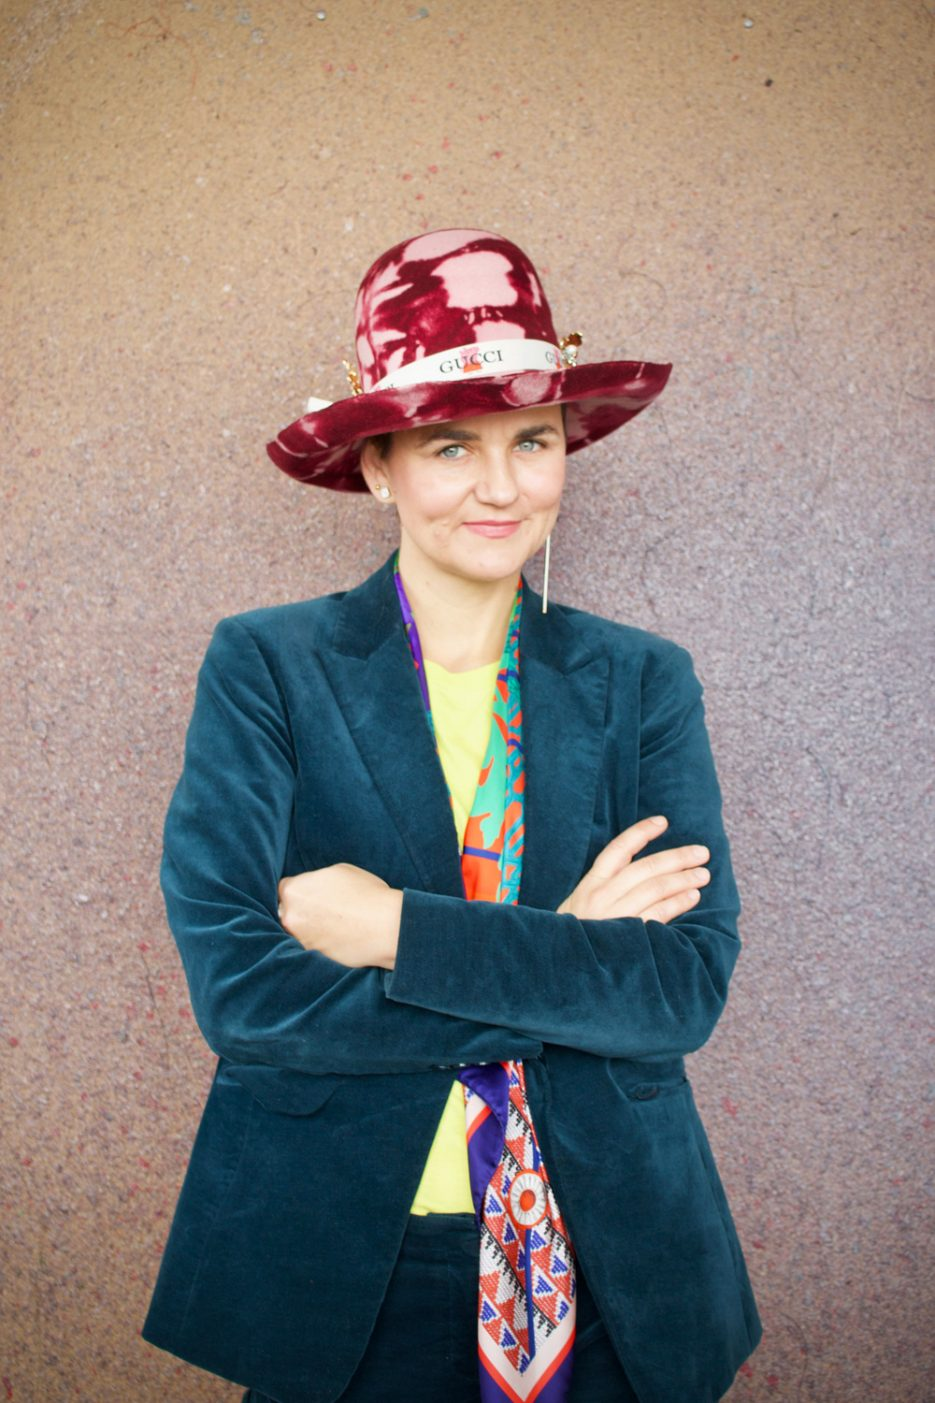 Milliner and co-owner of Parisian  Milliners, Crystal Birch. Image by Amber Rose Cowie.